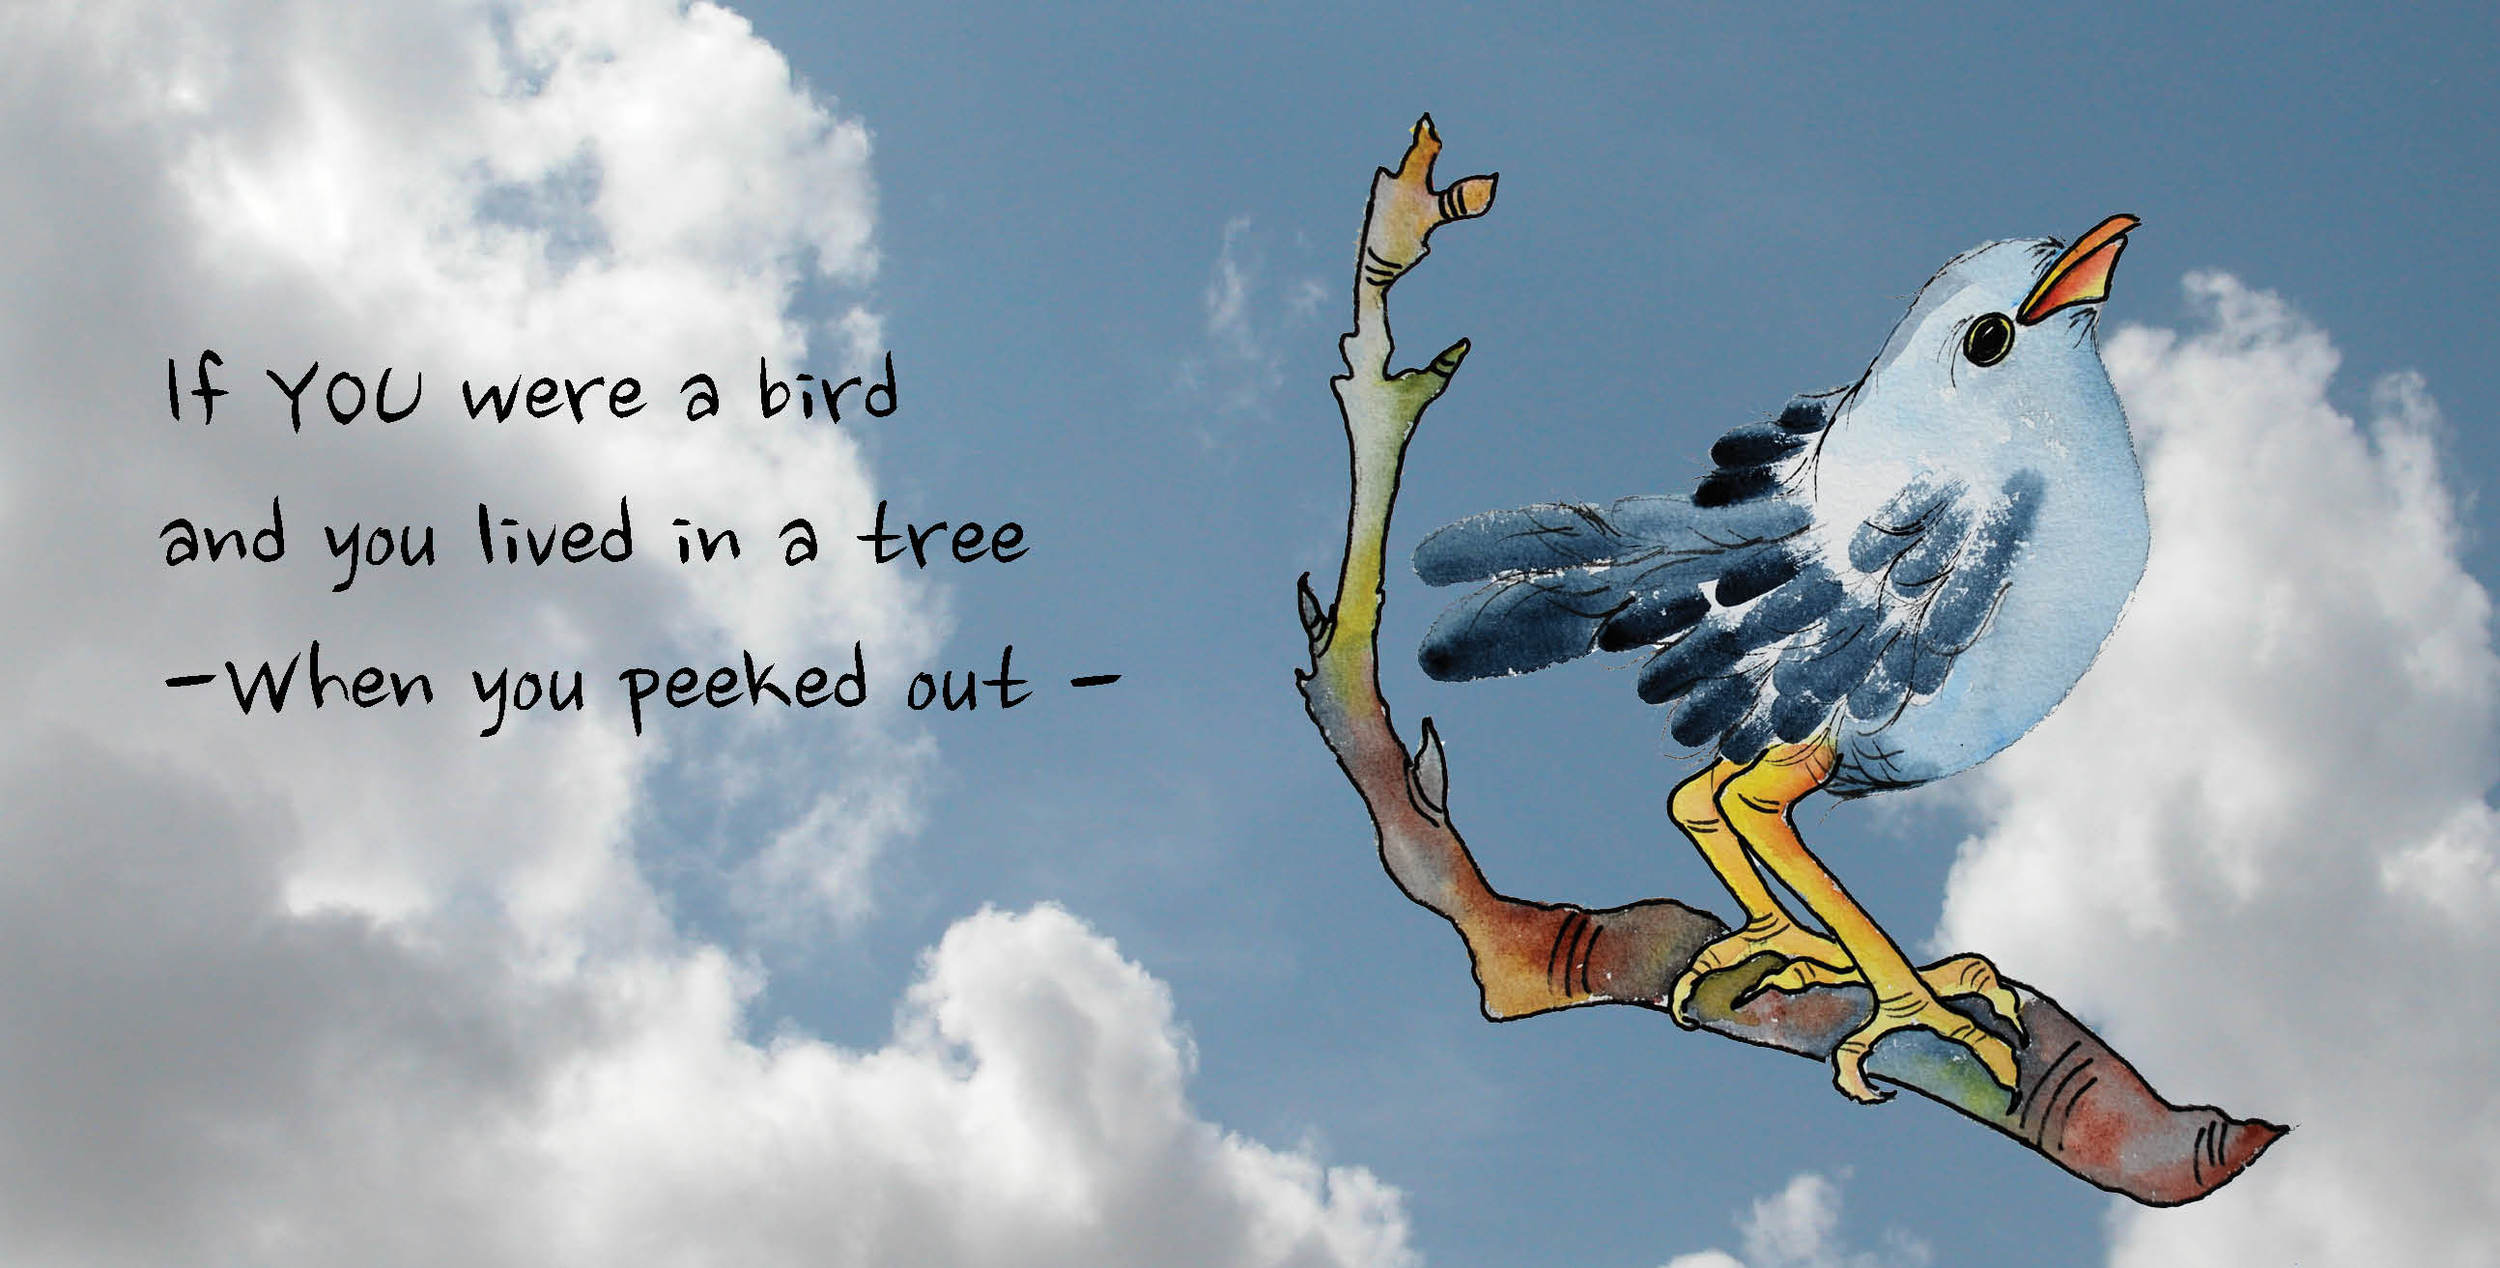 If You Were a Bird 3 pages2.jpg